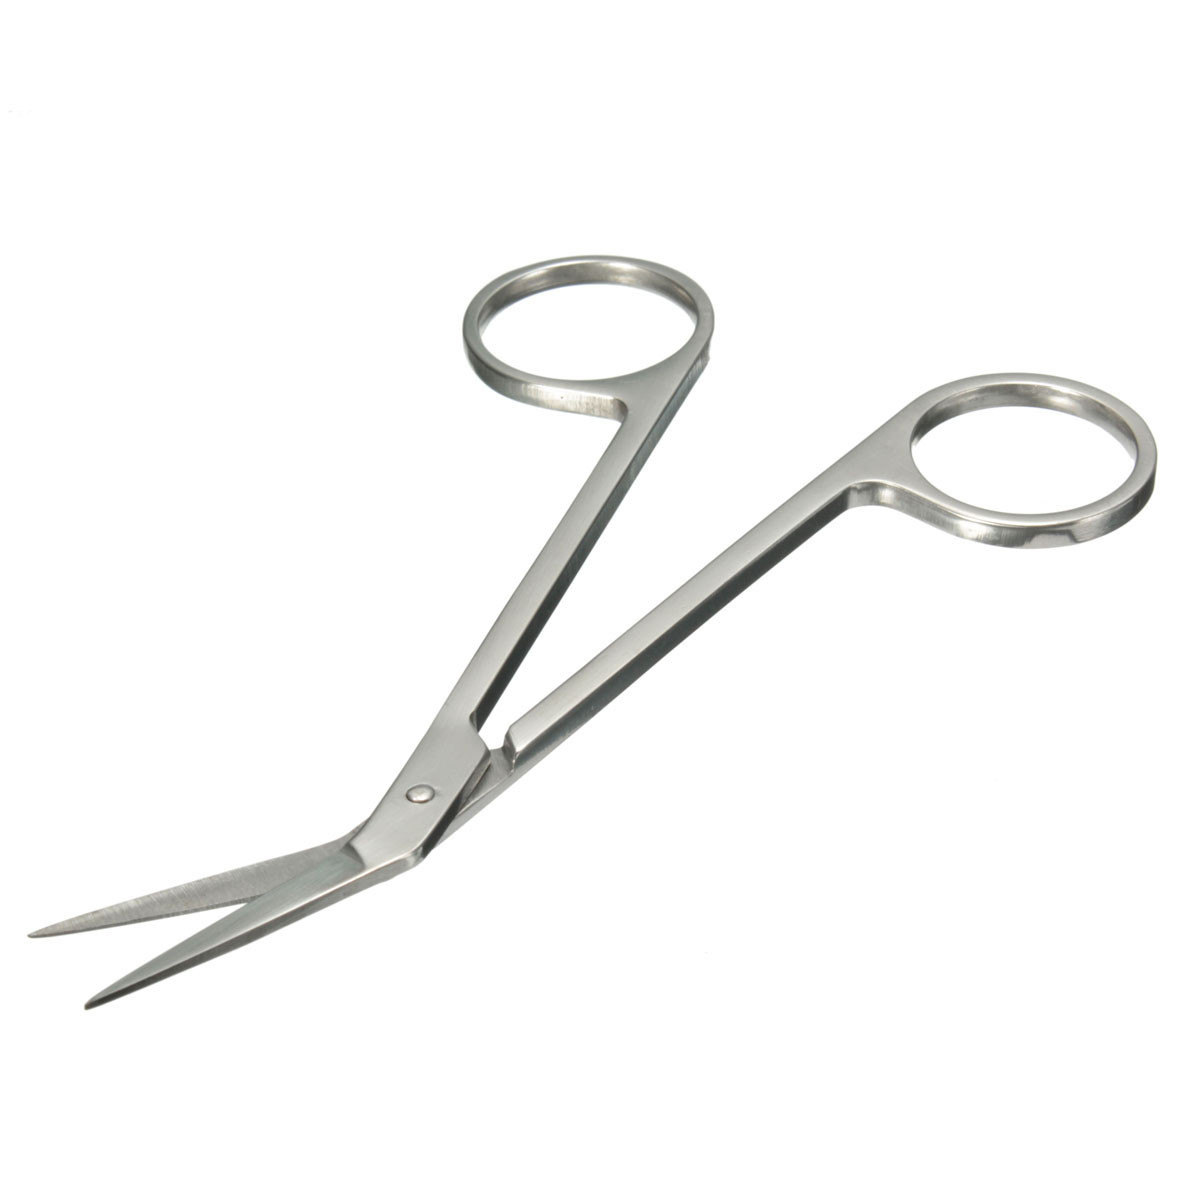 Stainless Steel Toe Nail Scissors Clippers Long Reach Handle ...